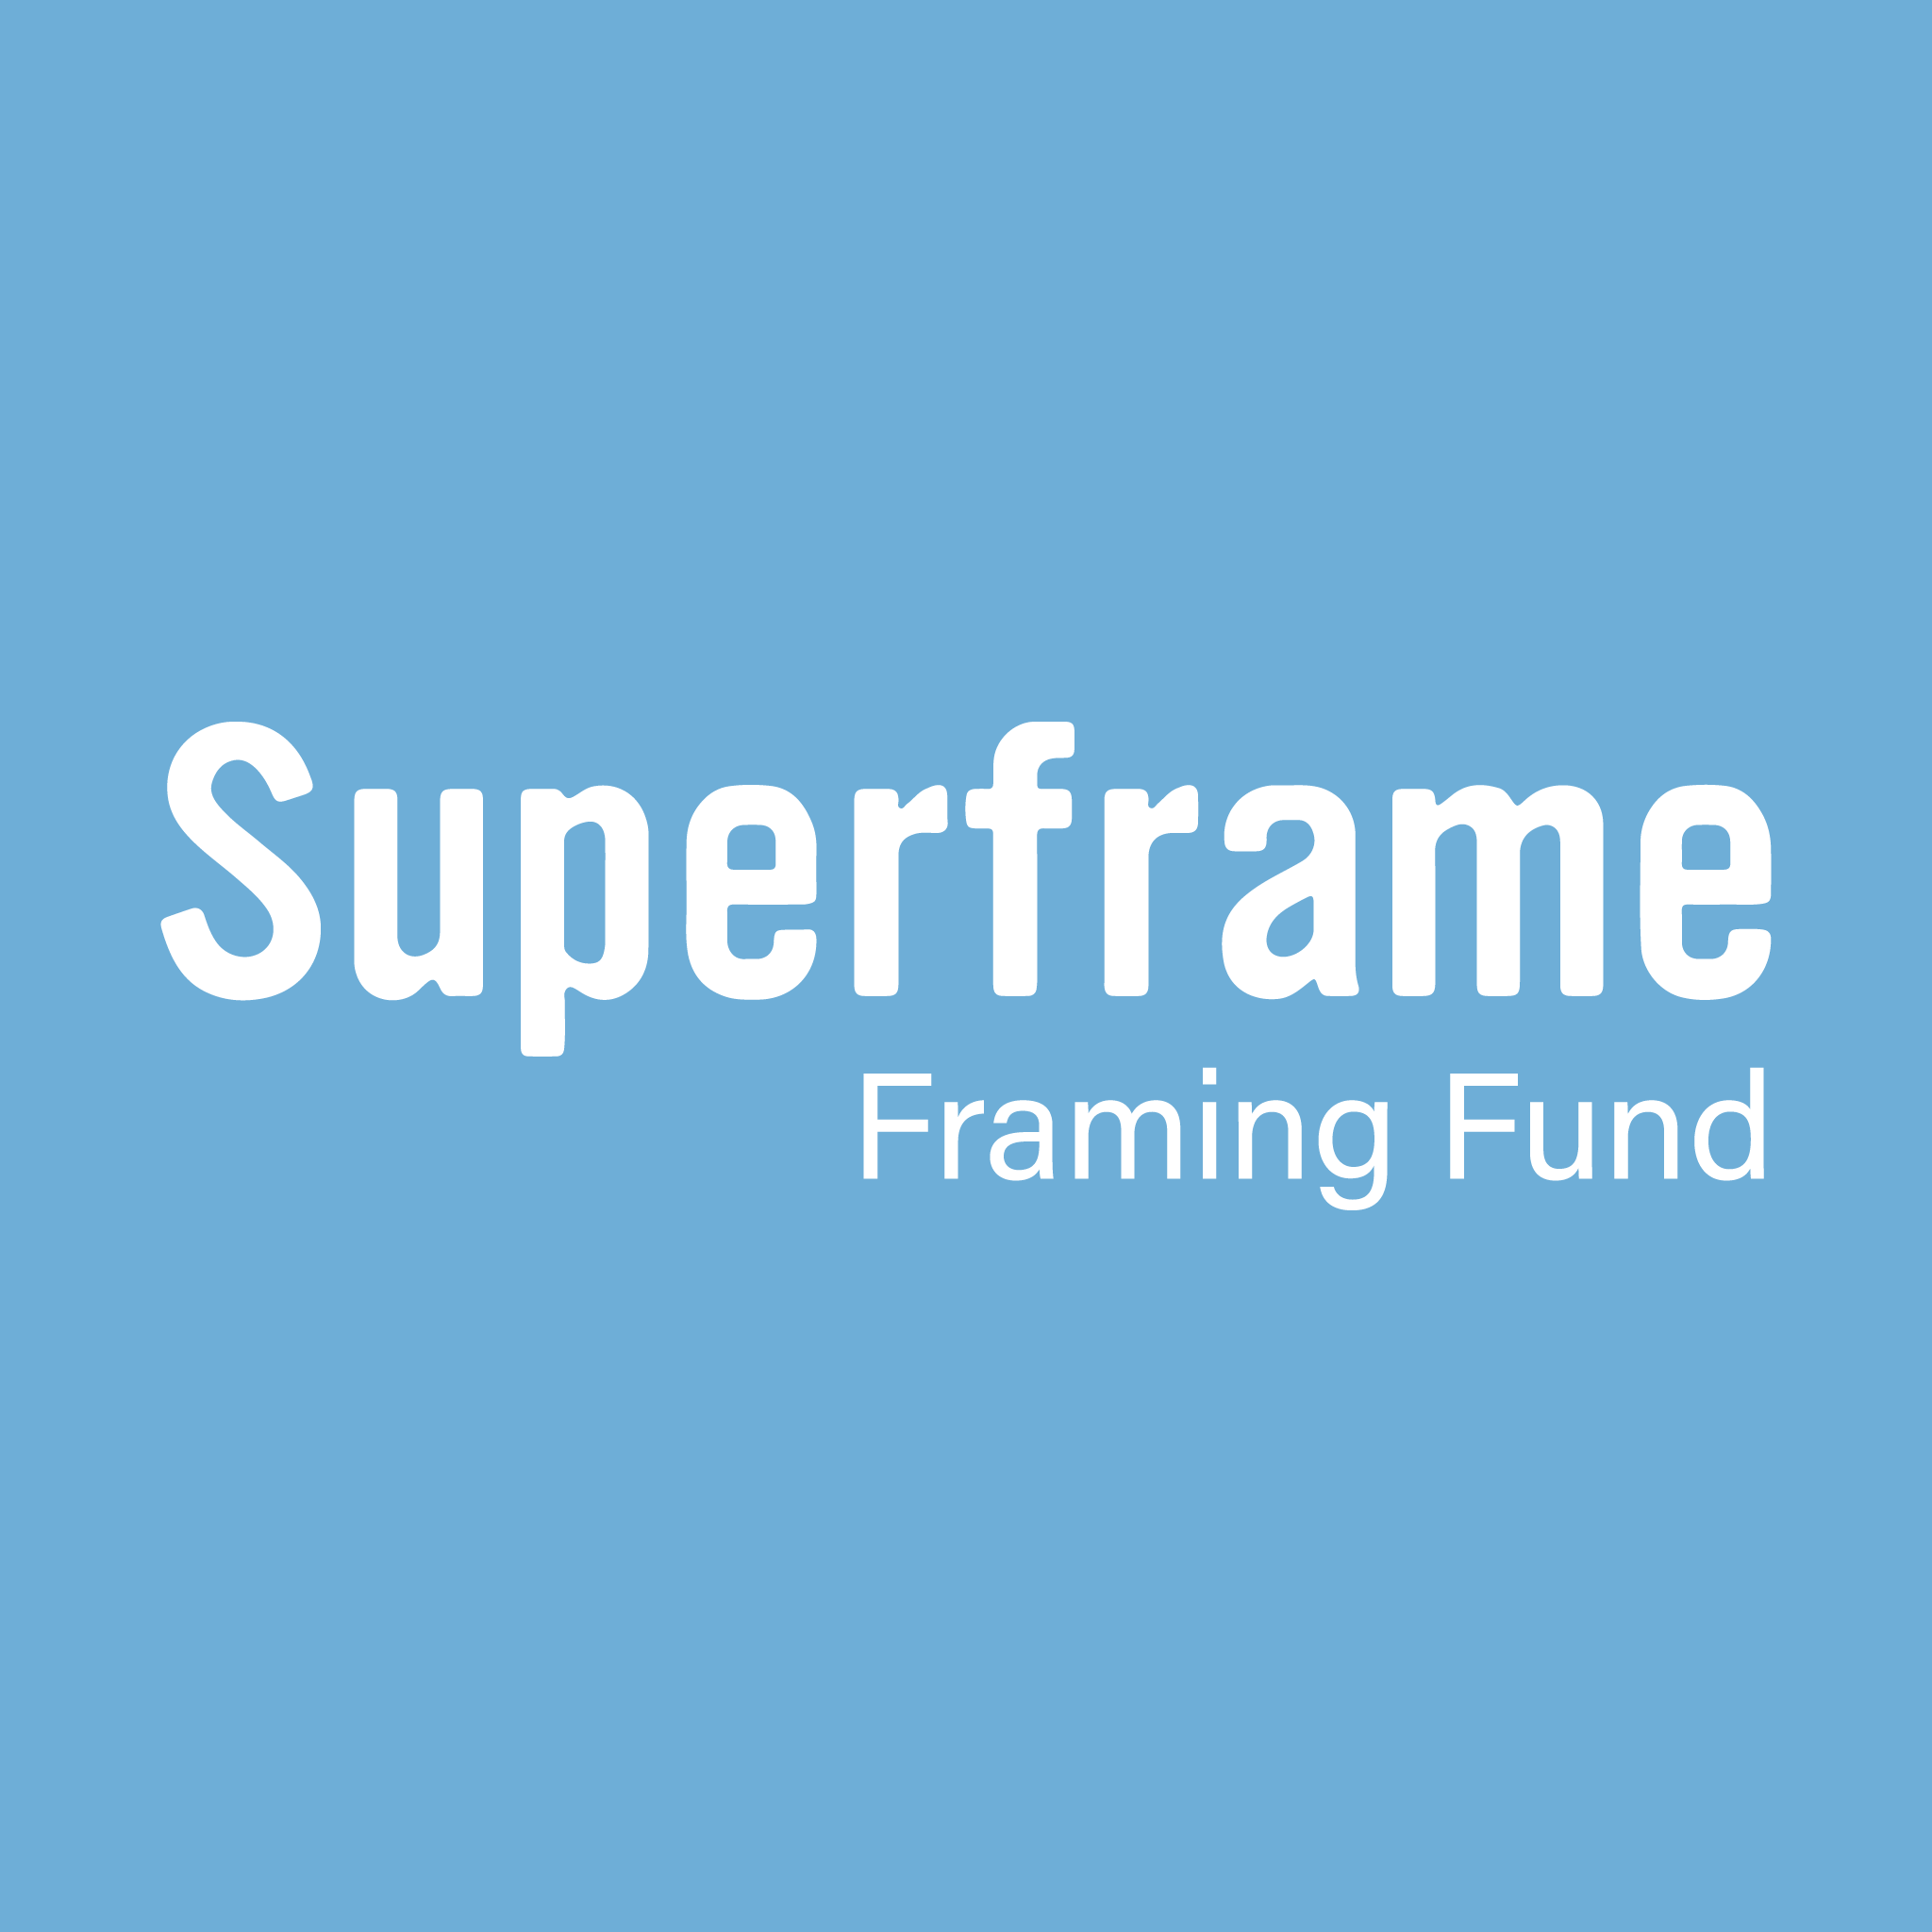 Superframe_1080x1080.png